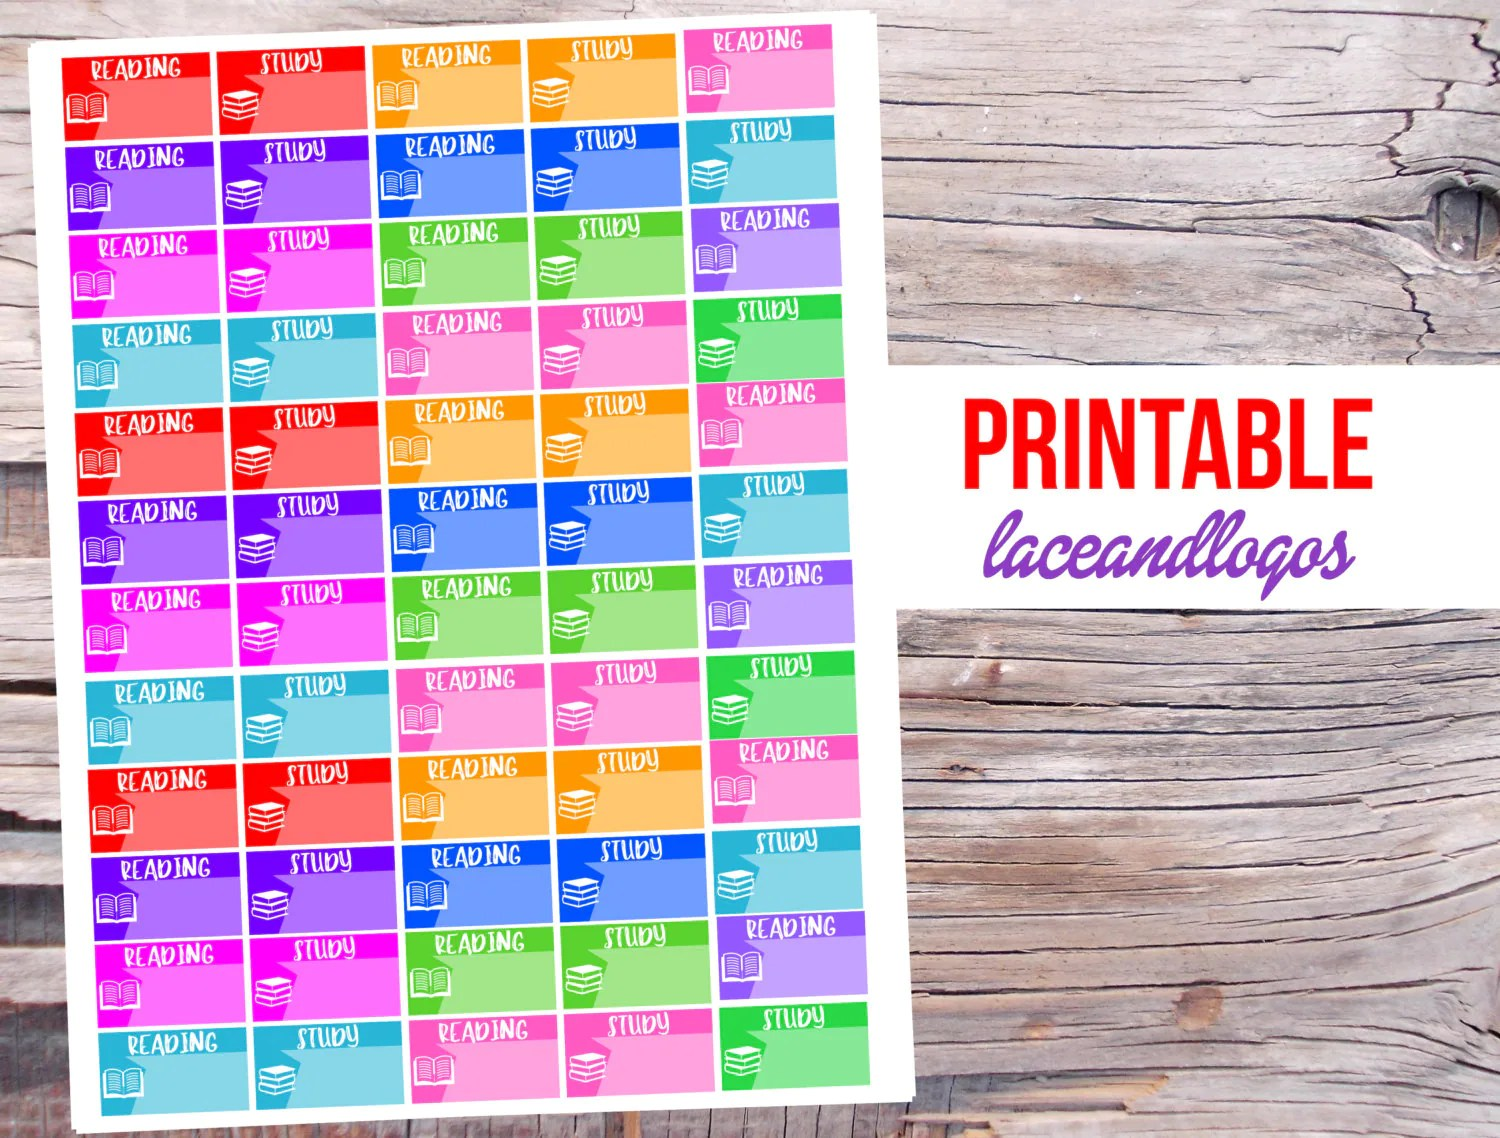 Printable Planner Stickers Student Printable Planner Stickers Reading Studying Student School